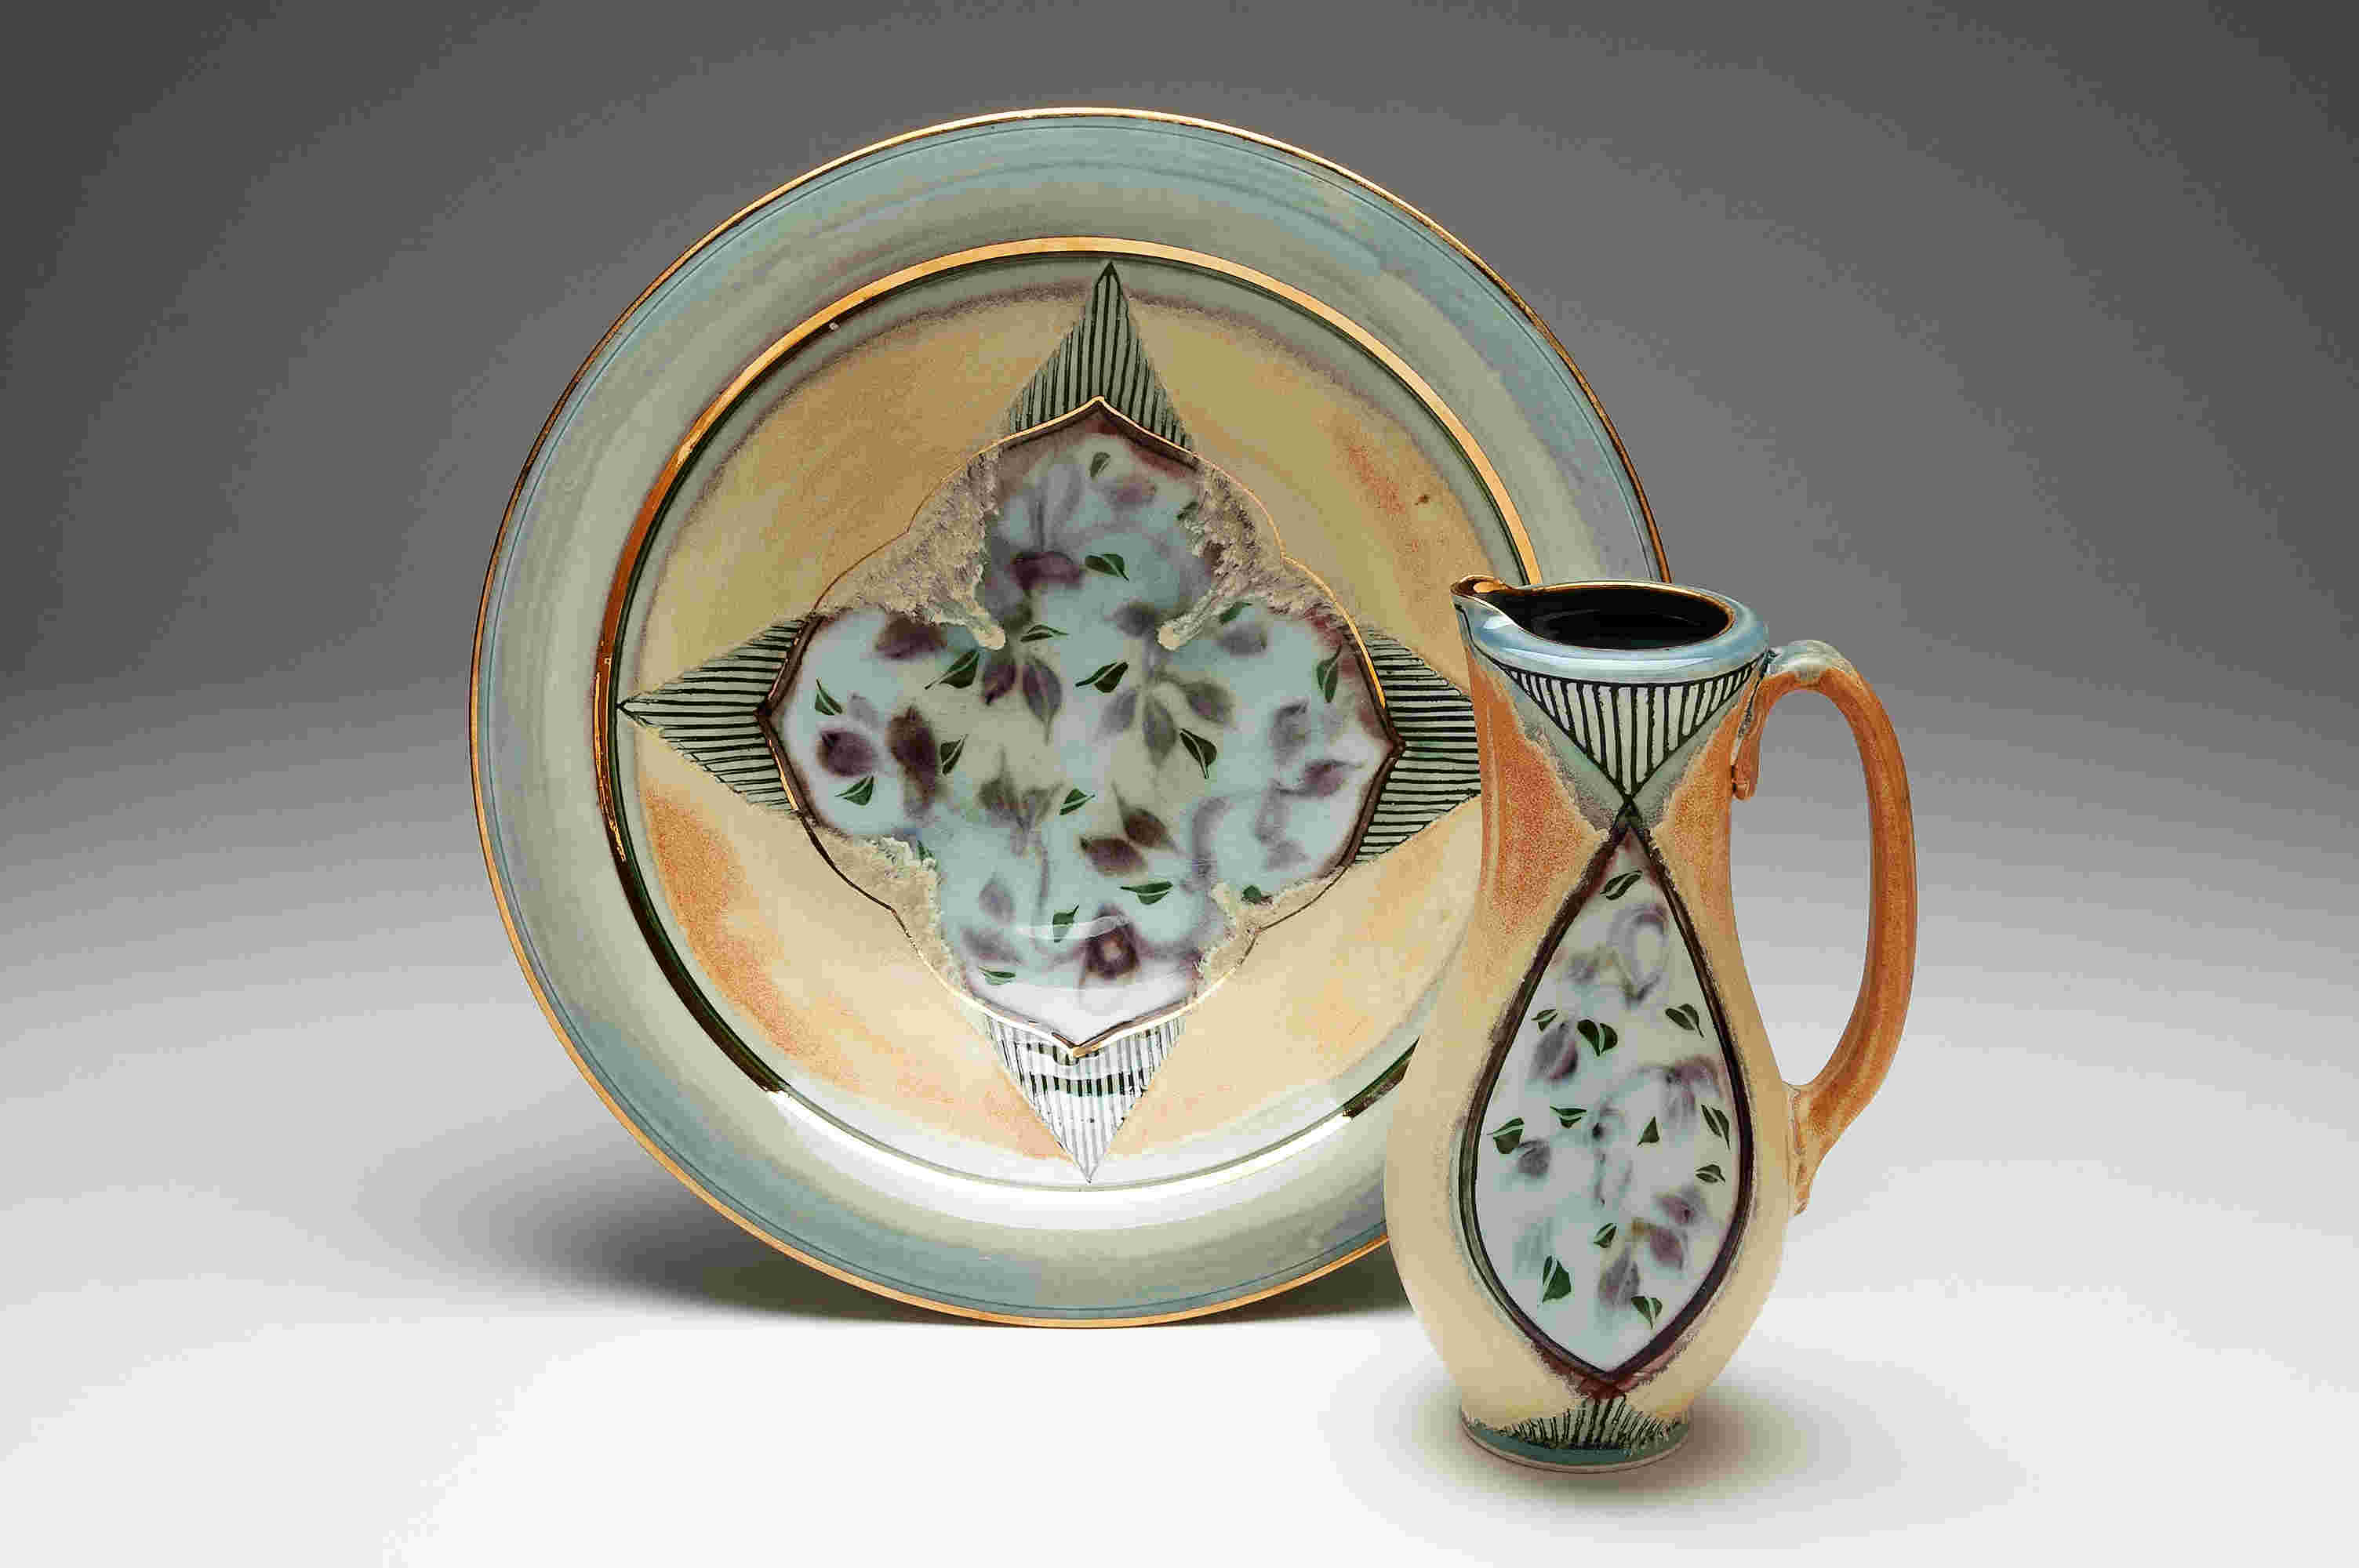 Valerie Metcalfe. 2015. Pitcher and Bowl set. Porcelain, gold lustre. Bowl: 40.6 cm. w. x 10.2 cm. h.; pitcher 133 cm. h.